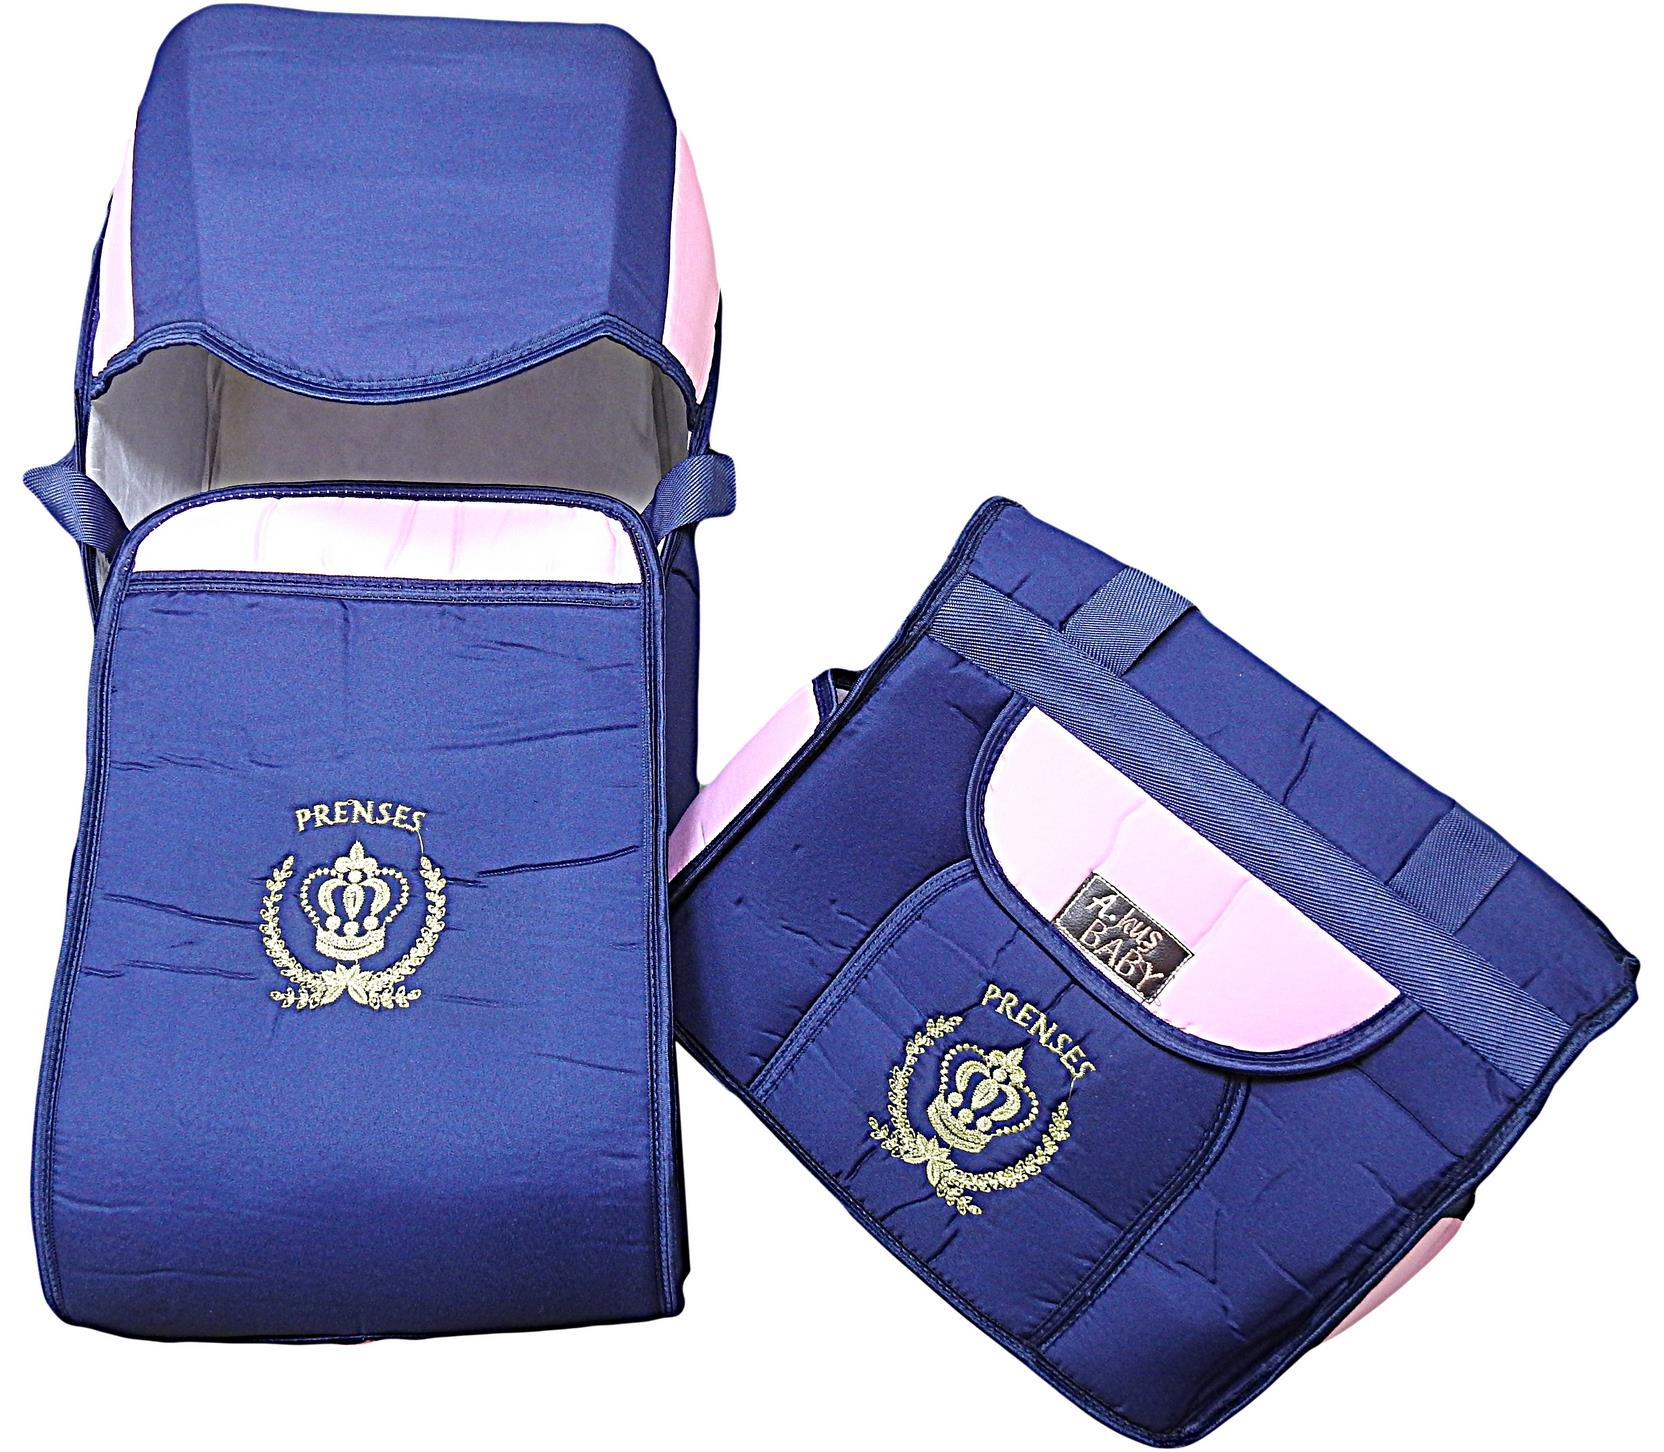 261 Wholesale quality and cheap two piece carry bag for babies